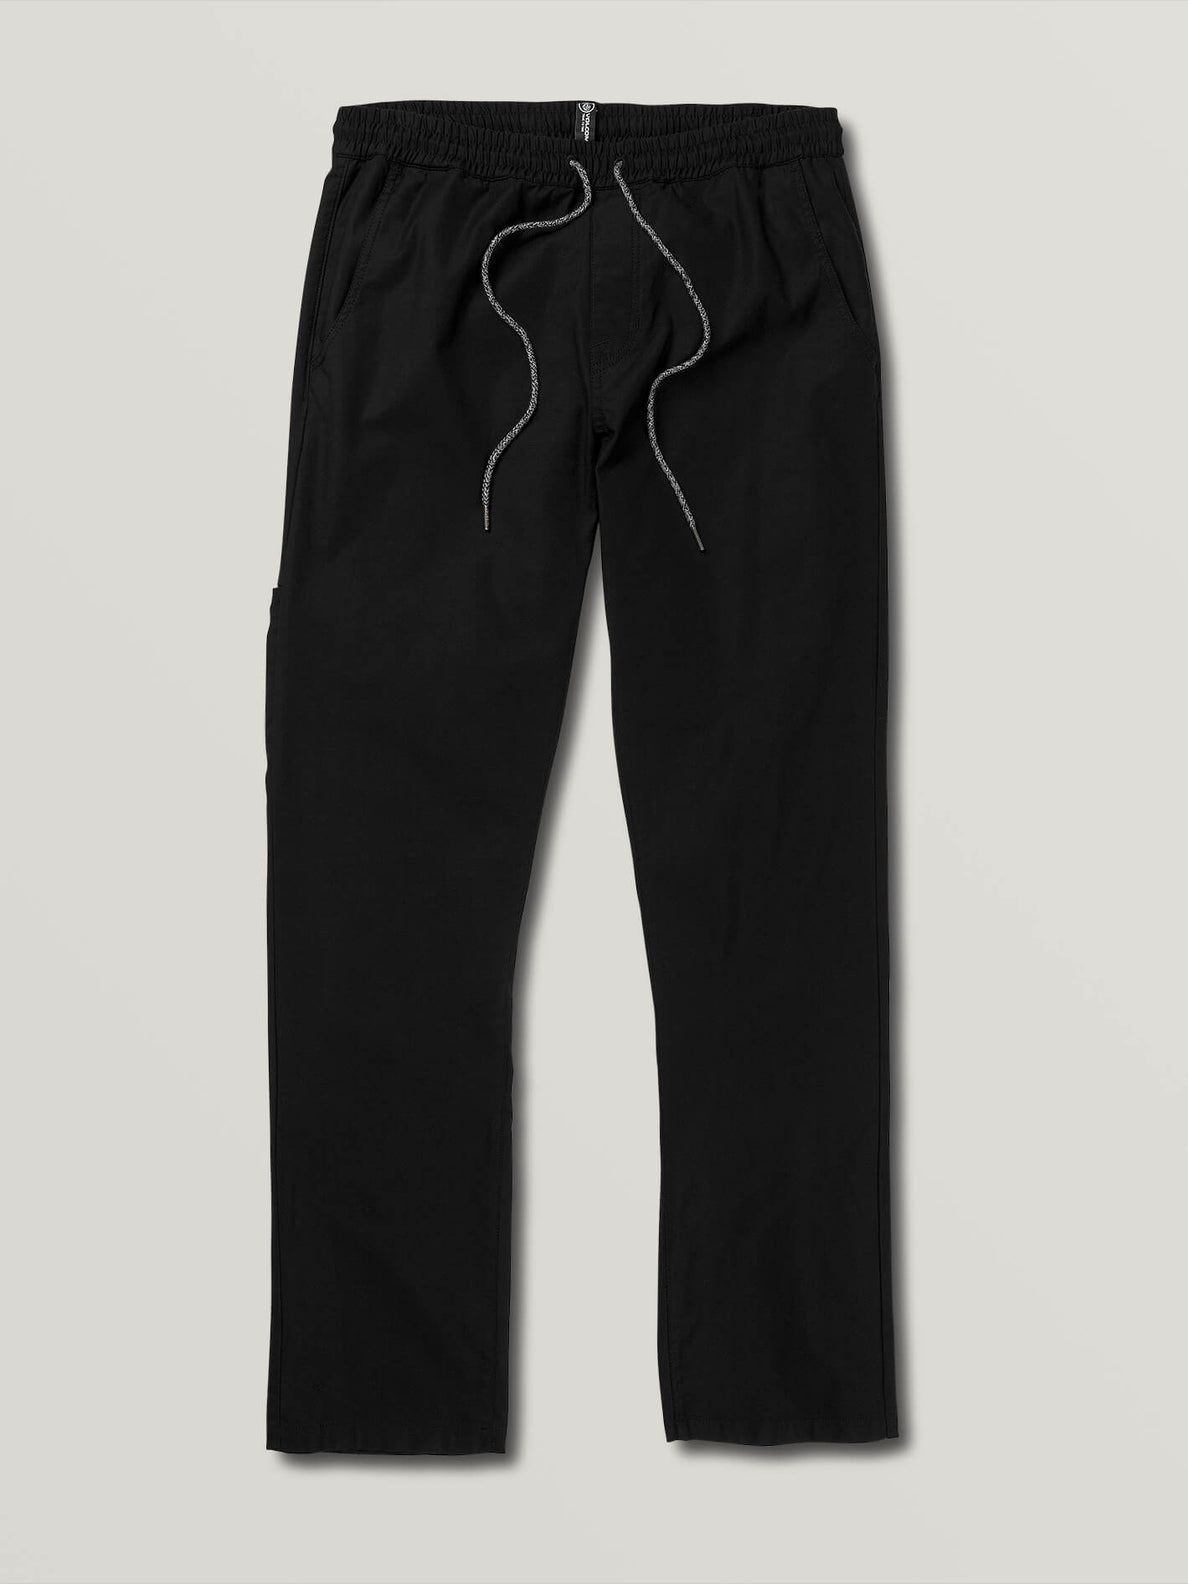 Riser Comfort Chino Pants (A1221900_BLK) [F]